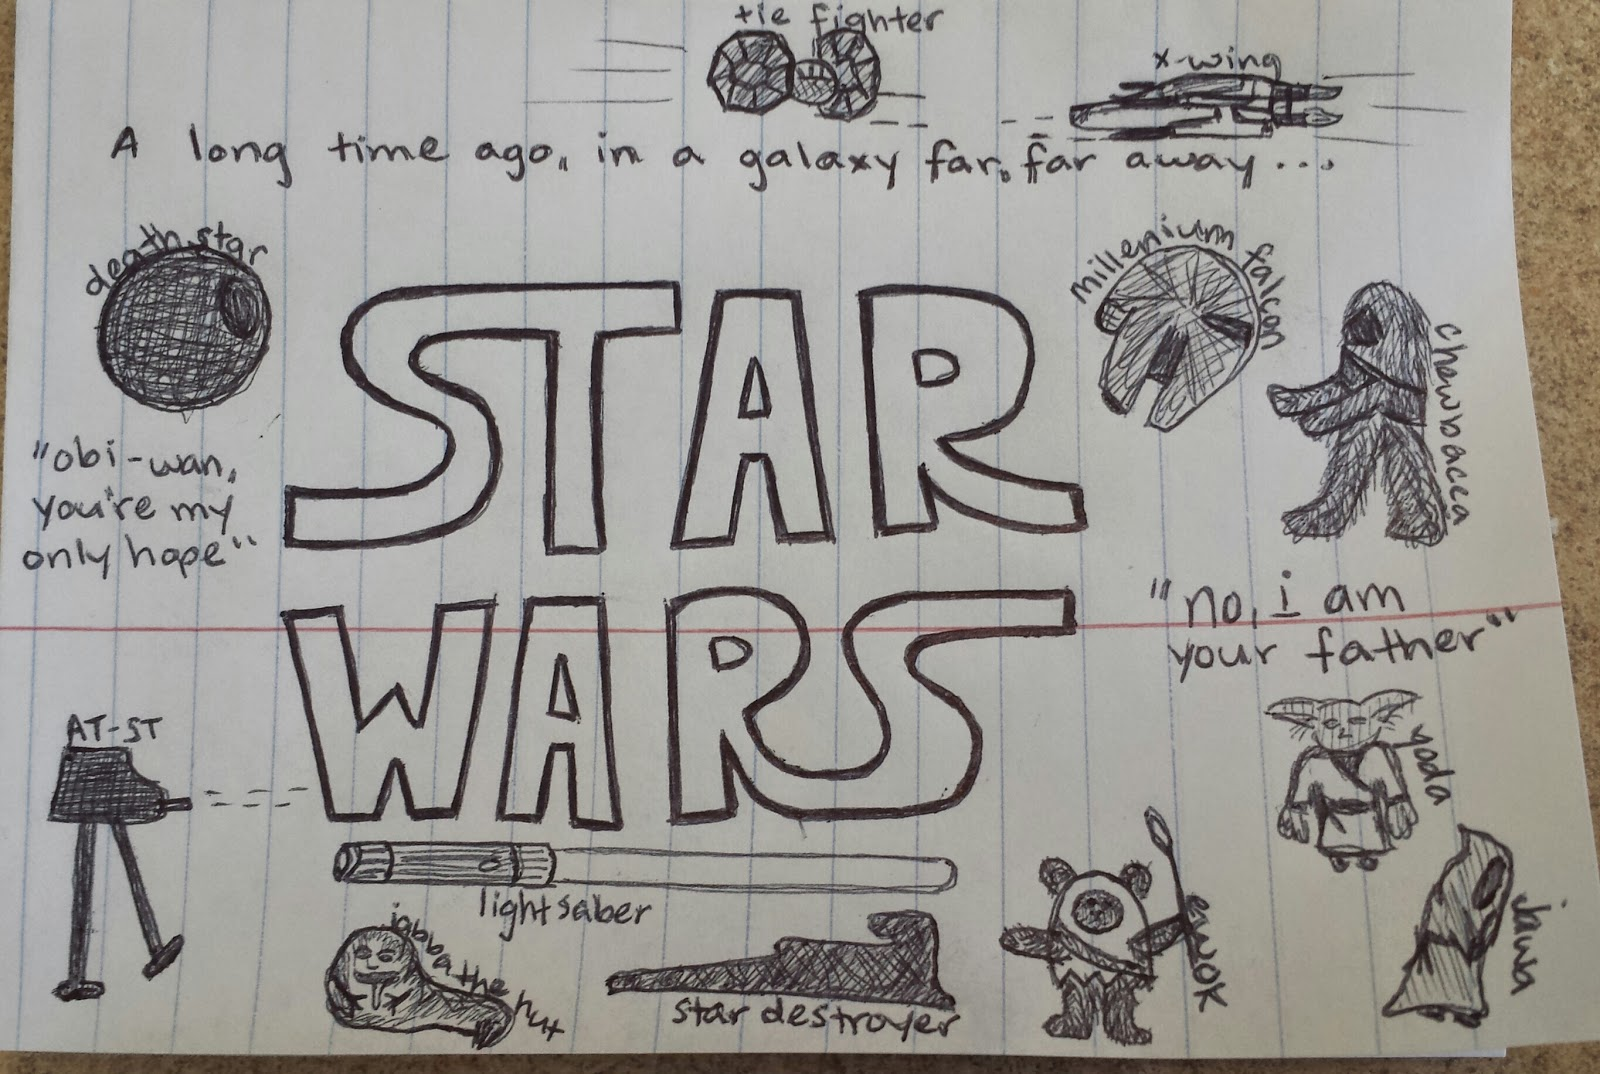 star wars as requested by the lawyer